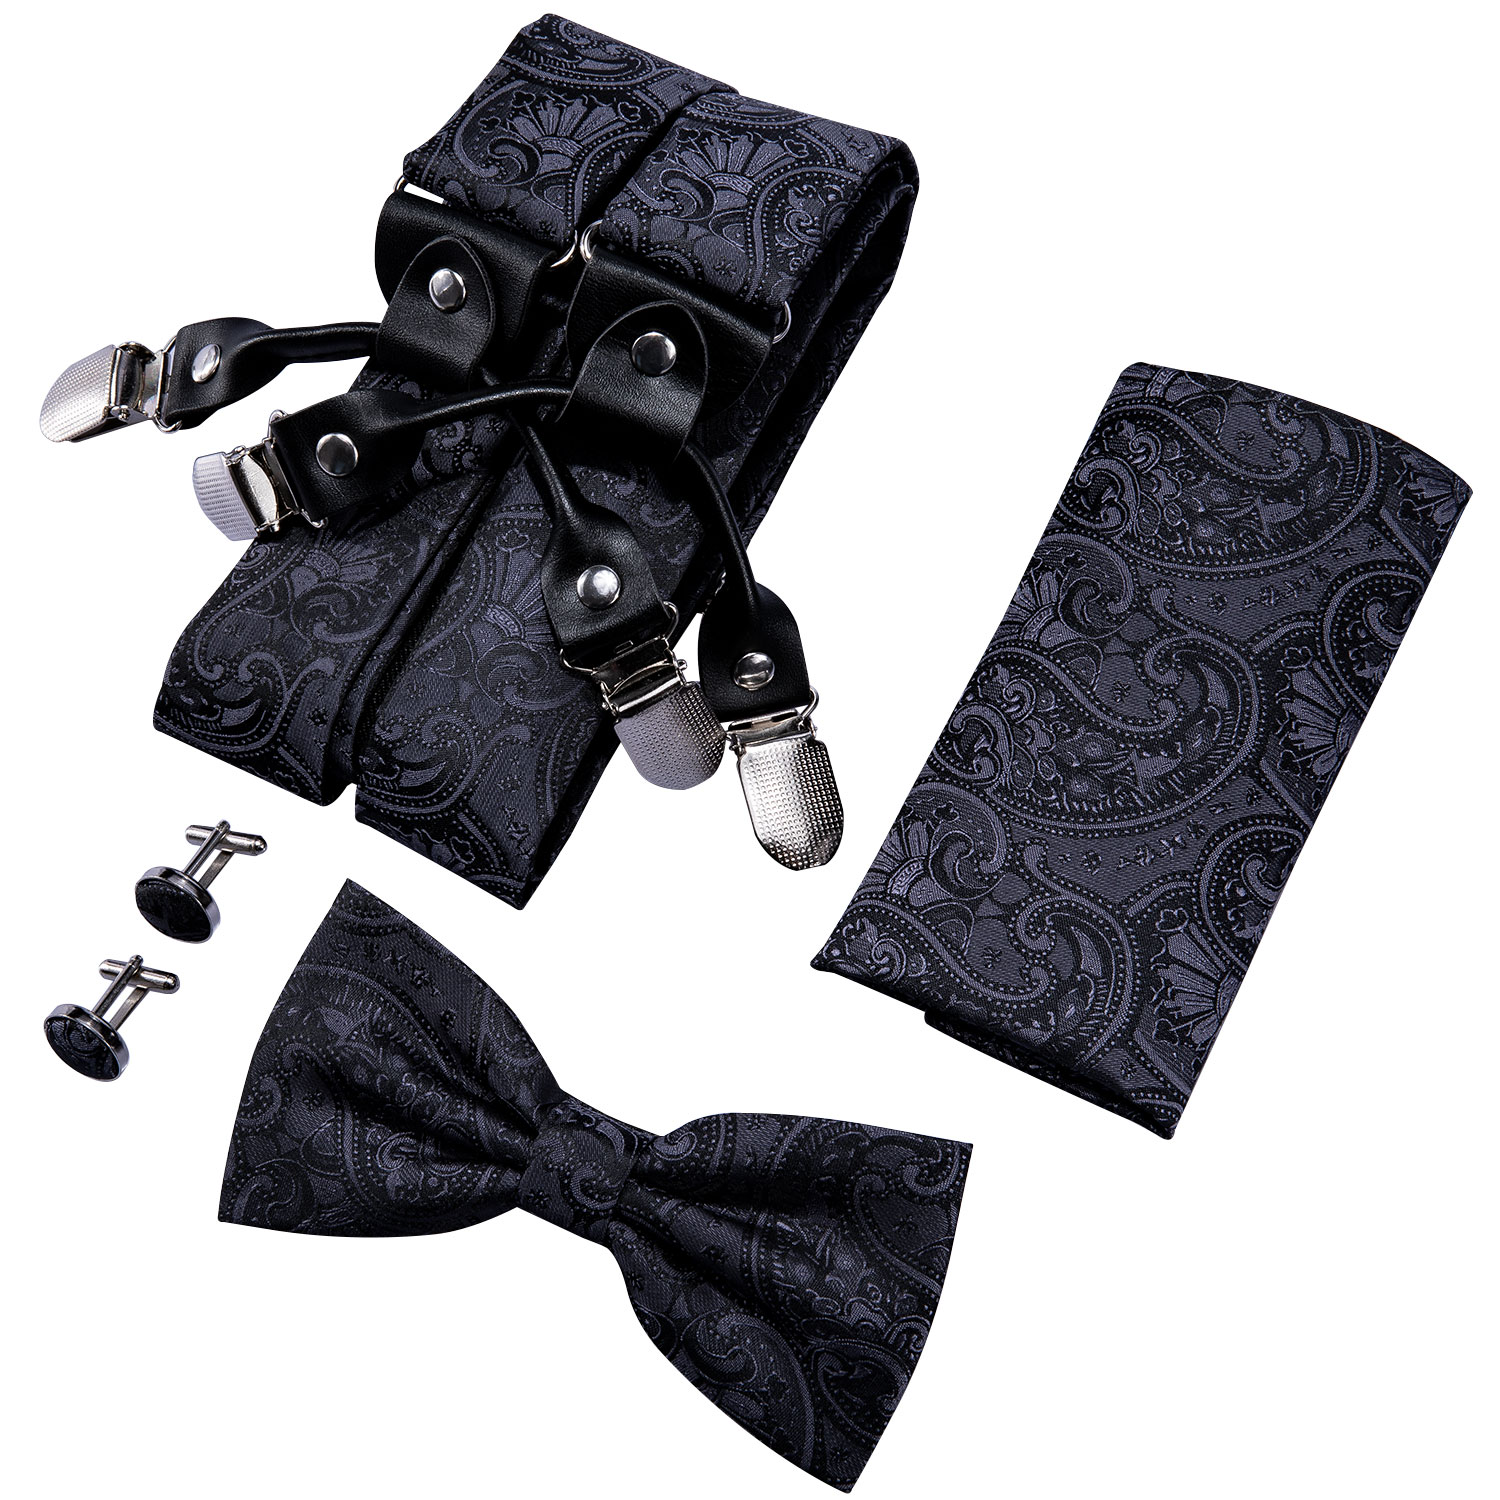 Black Paisley For Men Suspenders Shirt Bow Tie Hanky Set Woven Y-Back Silk Suspender No-slip Silver Clips Barry.WangBB-2005